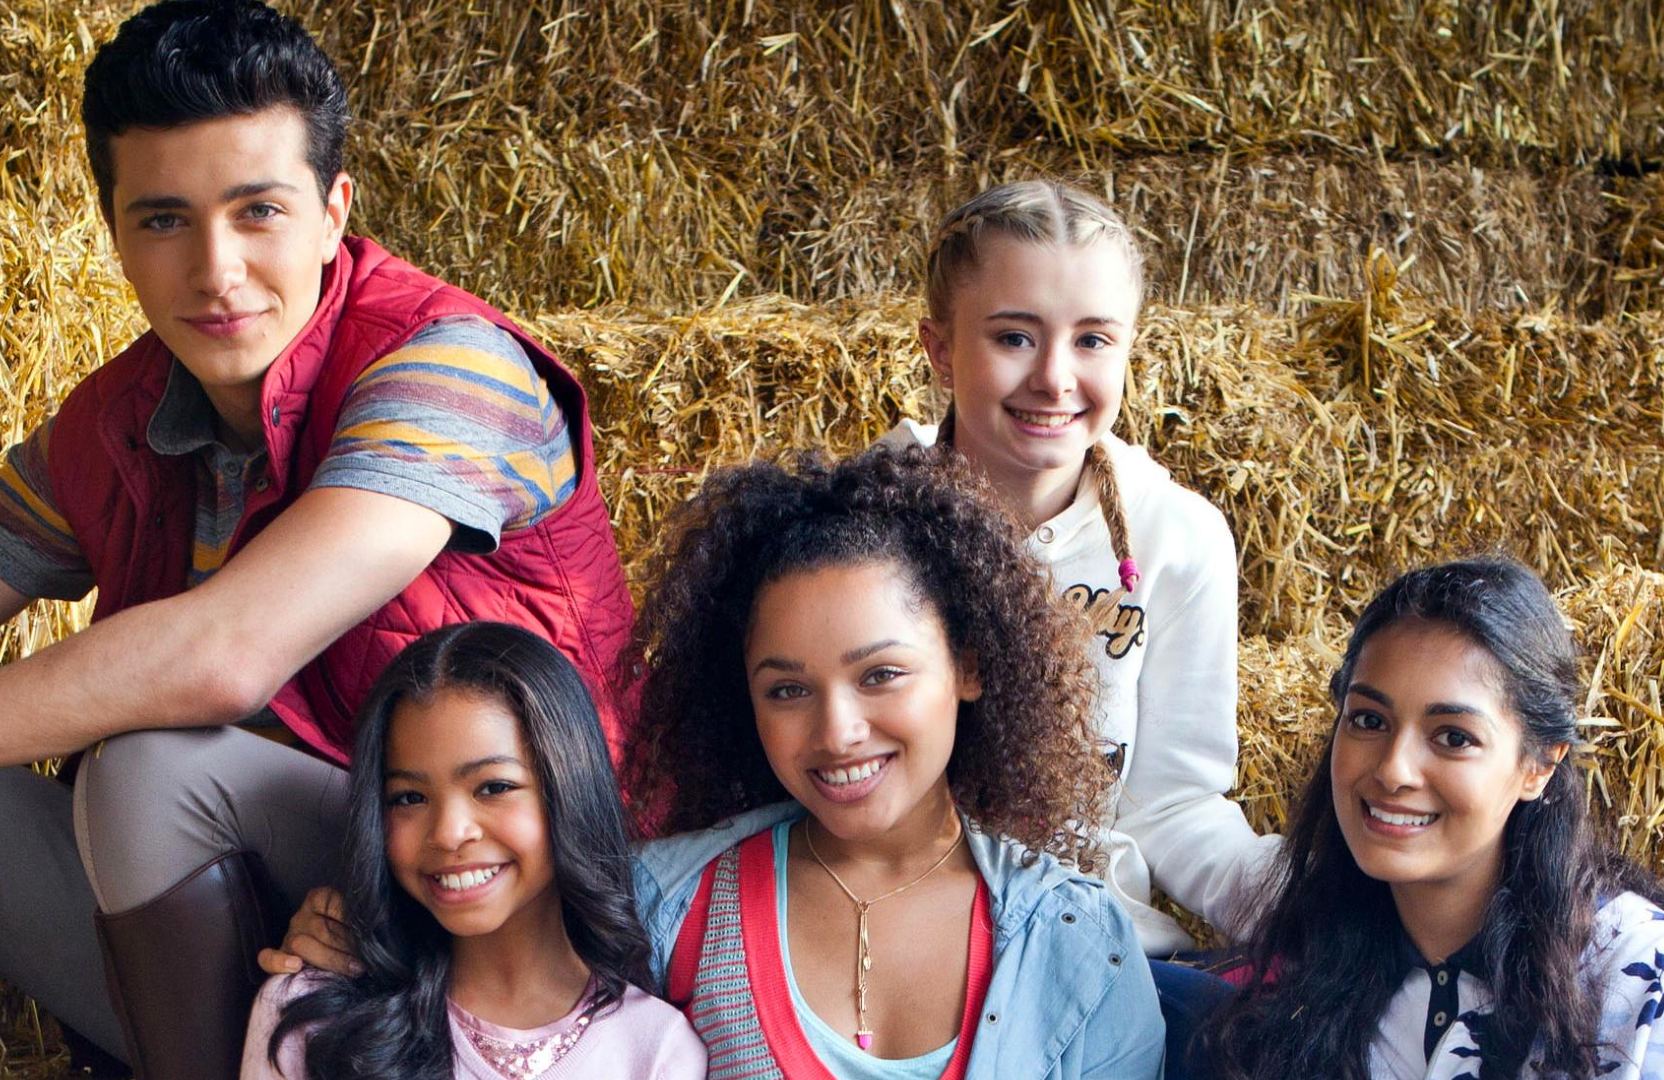 Bruce Herbelin-Earle, Jaylen Barron, Kerry Ingram, and Manpreet Bambra in Free Rein (Netflix)